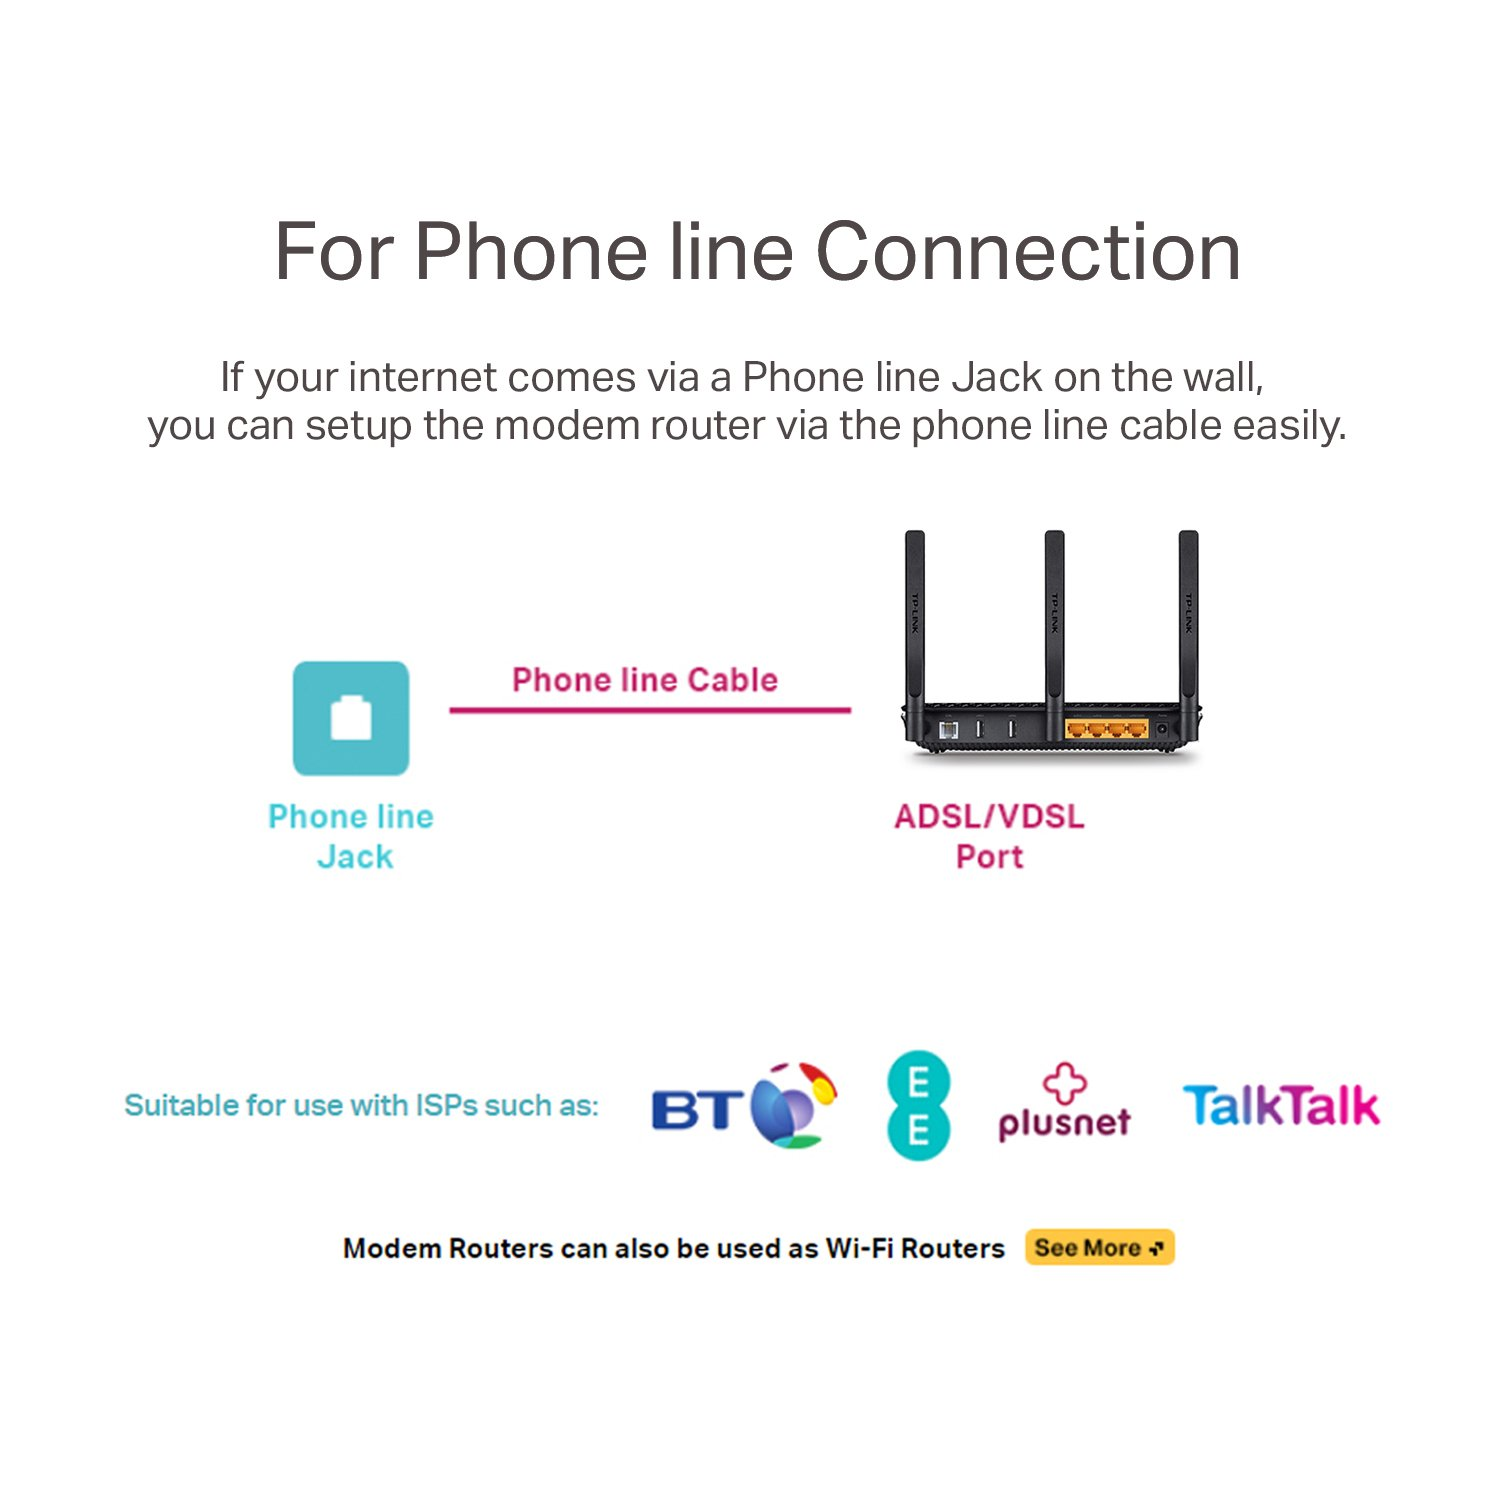 TP-Link AC1600 Wireless Dual Band Gigabit VDSL/ADSL Modem Router for Phone  Line Connections (BT Infinity, TalkTalk, EE and PlusNet Fibre) 2 USB, 2 0